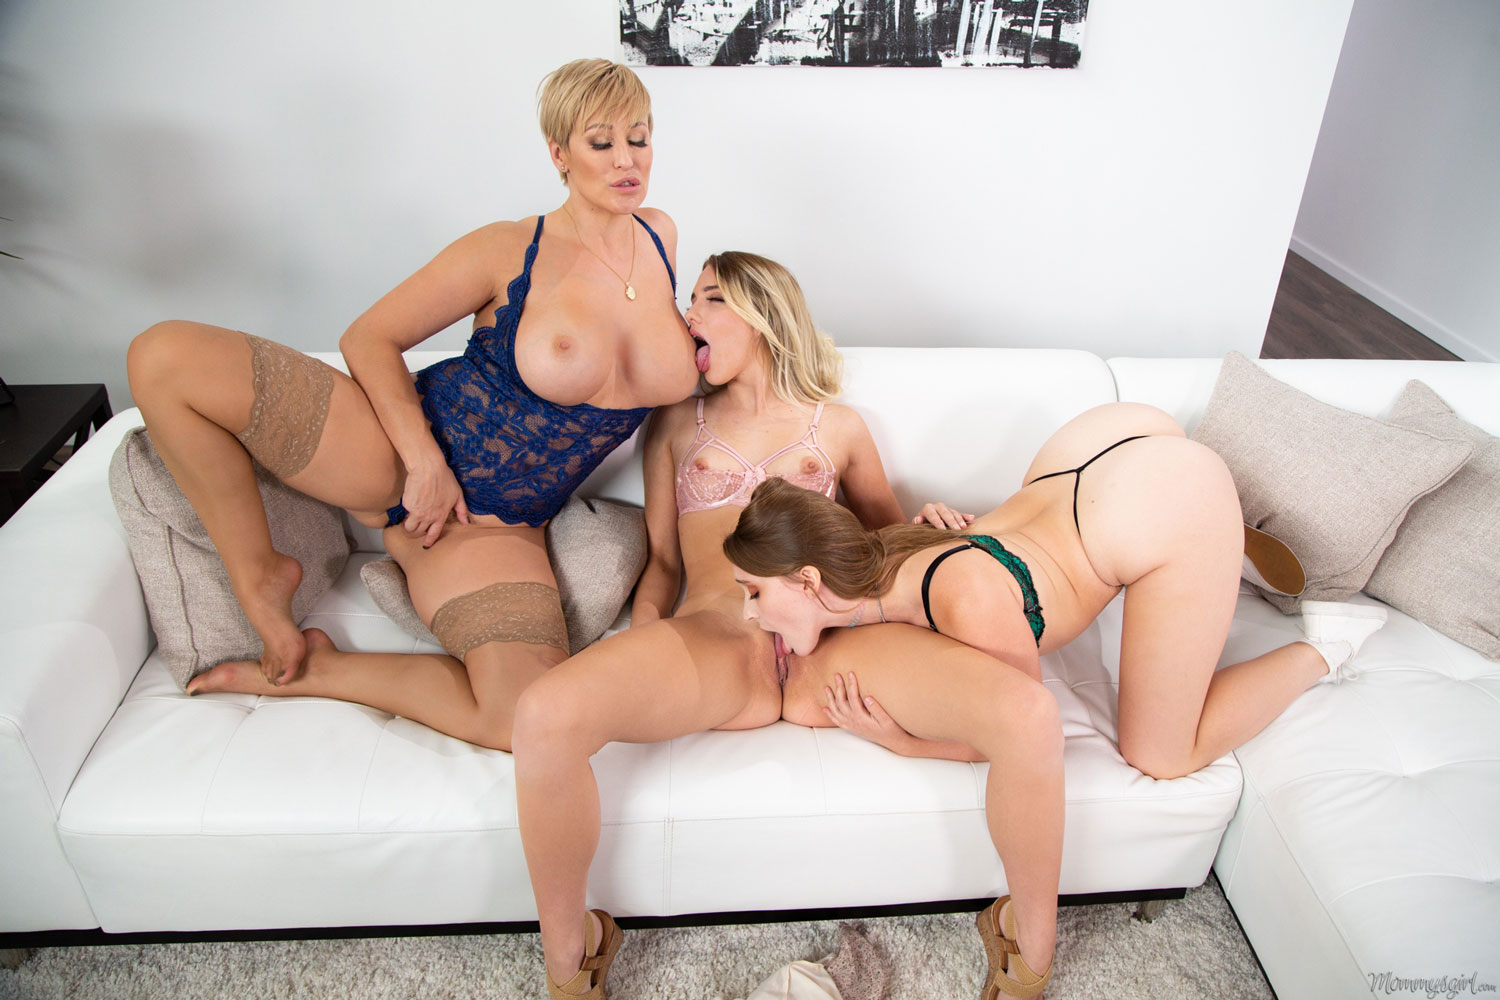 Girlsway - Ryan Keely Fun with Two Hotties 5